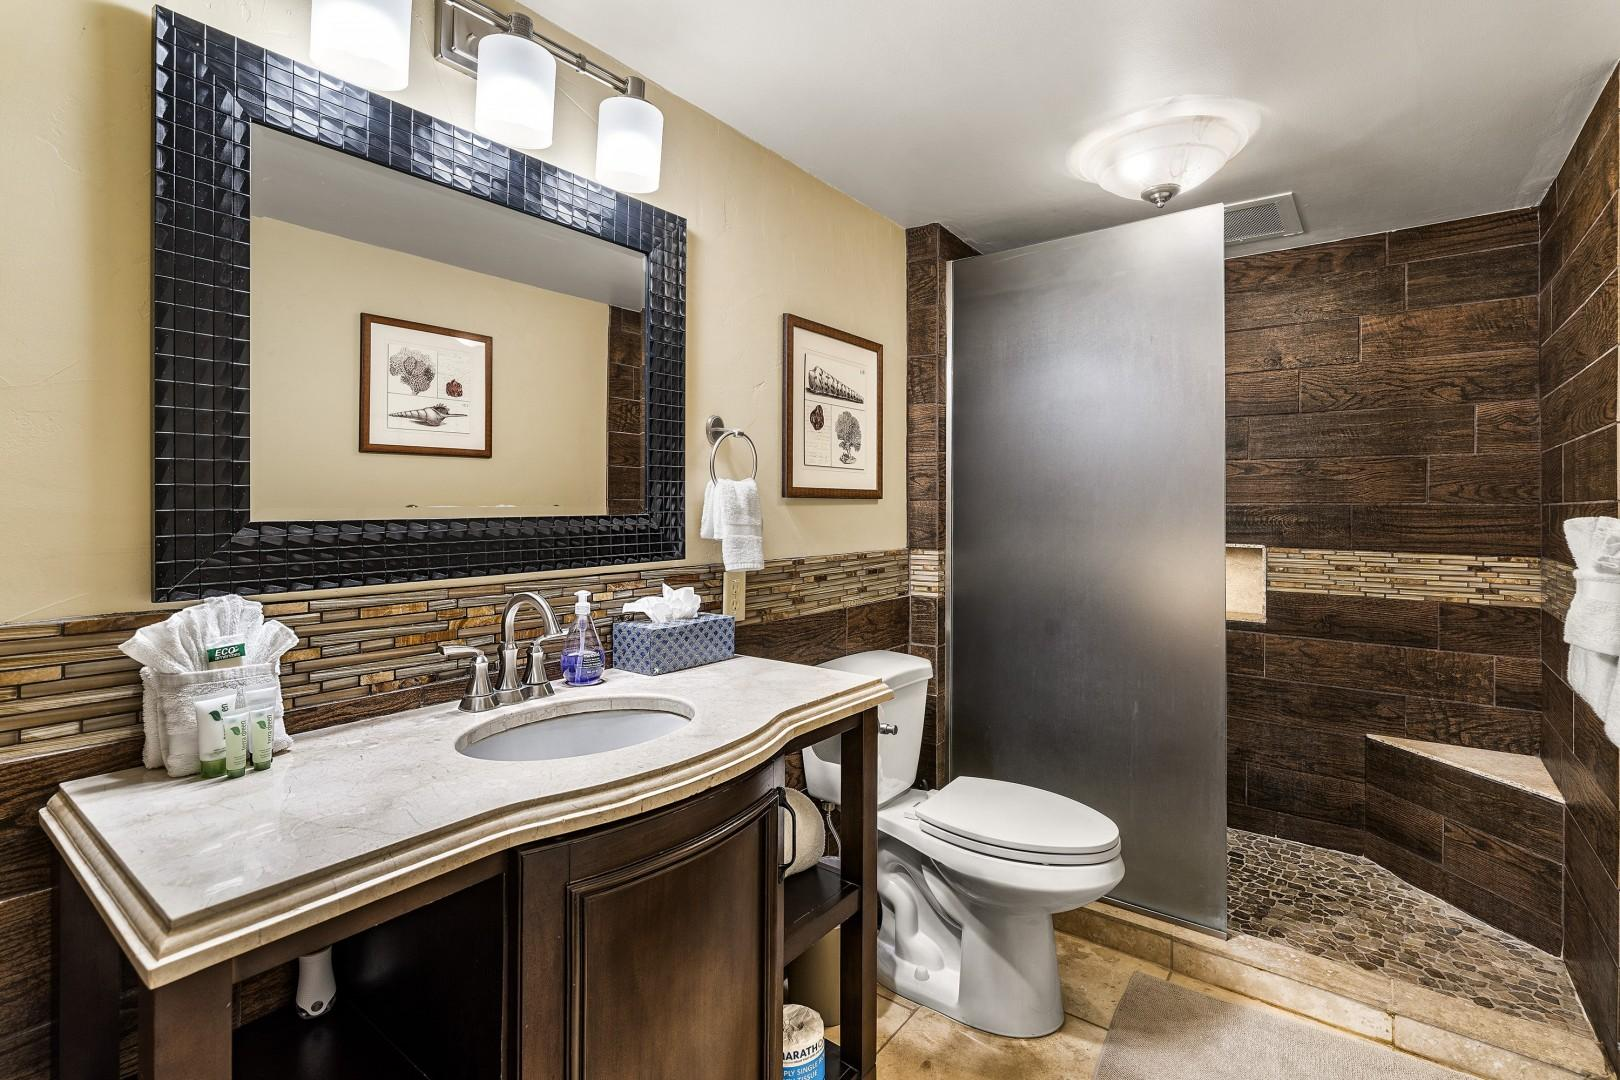 Renovated bathroom right outside the bedroom